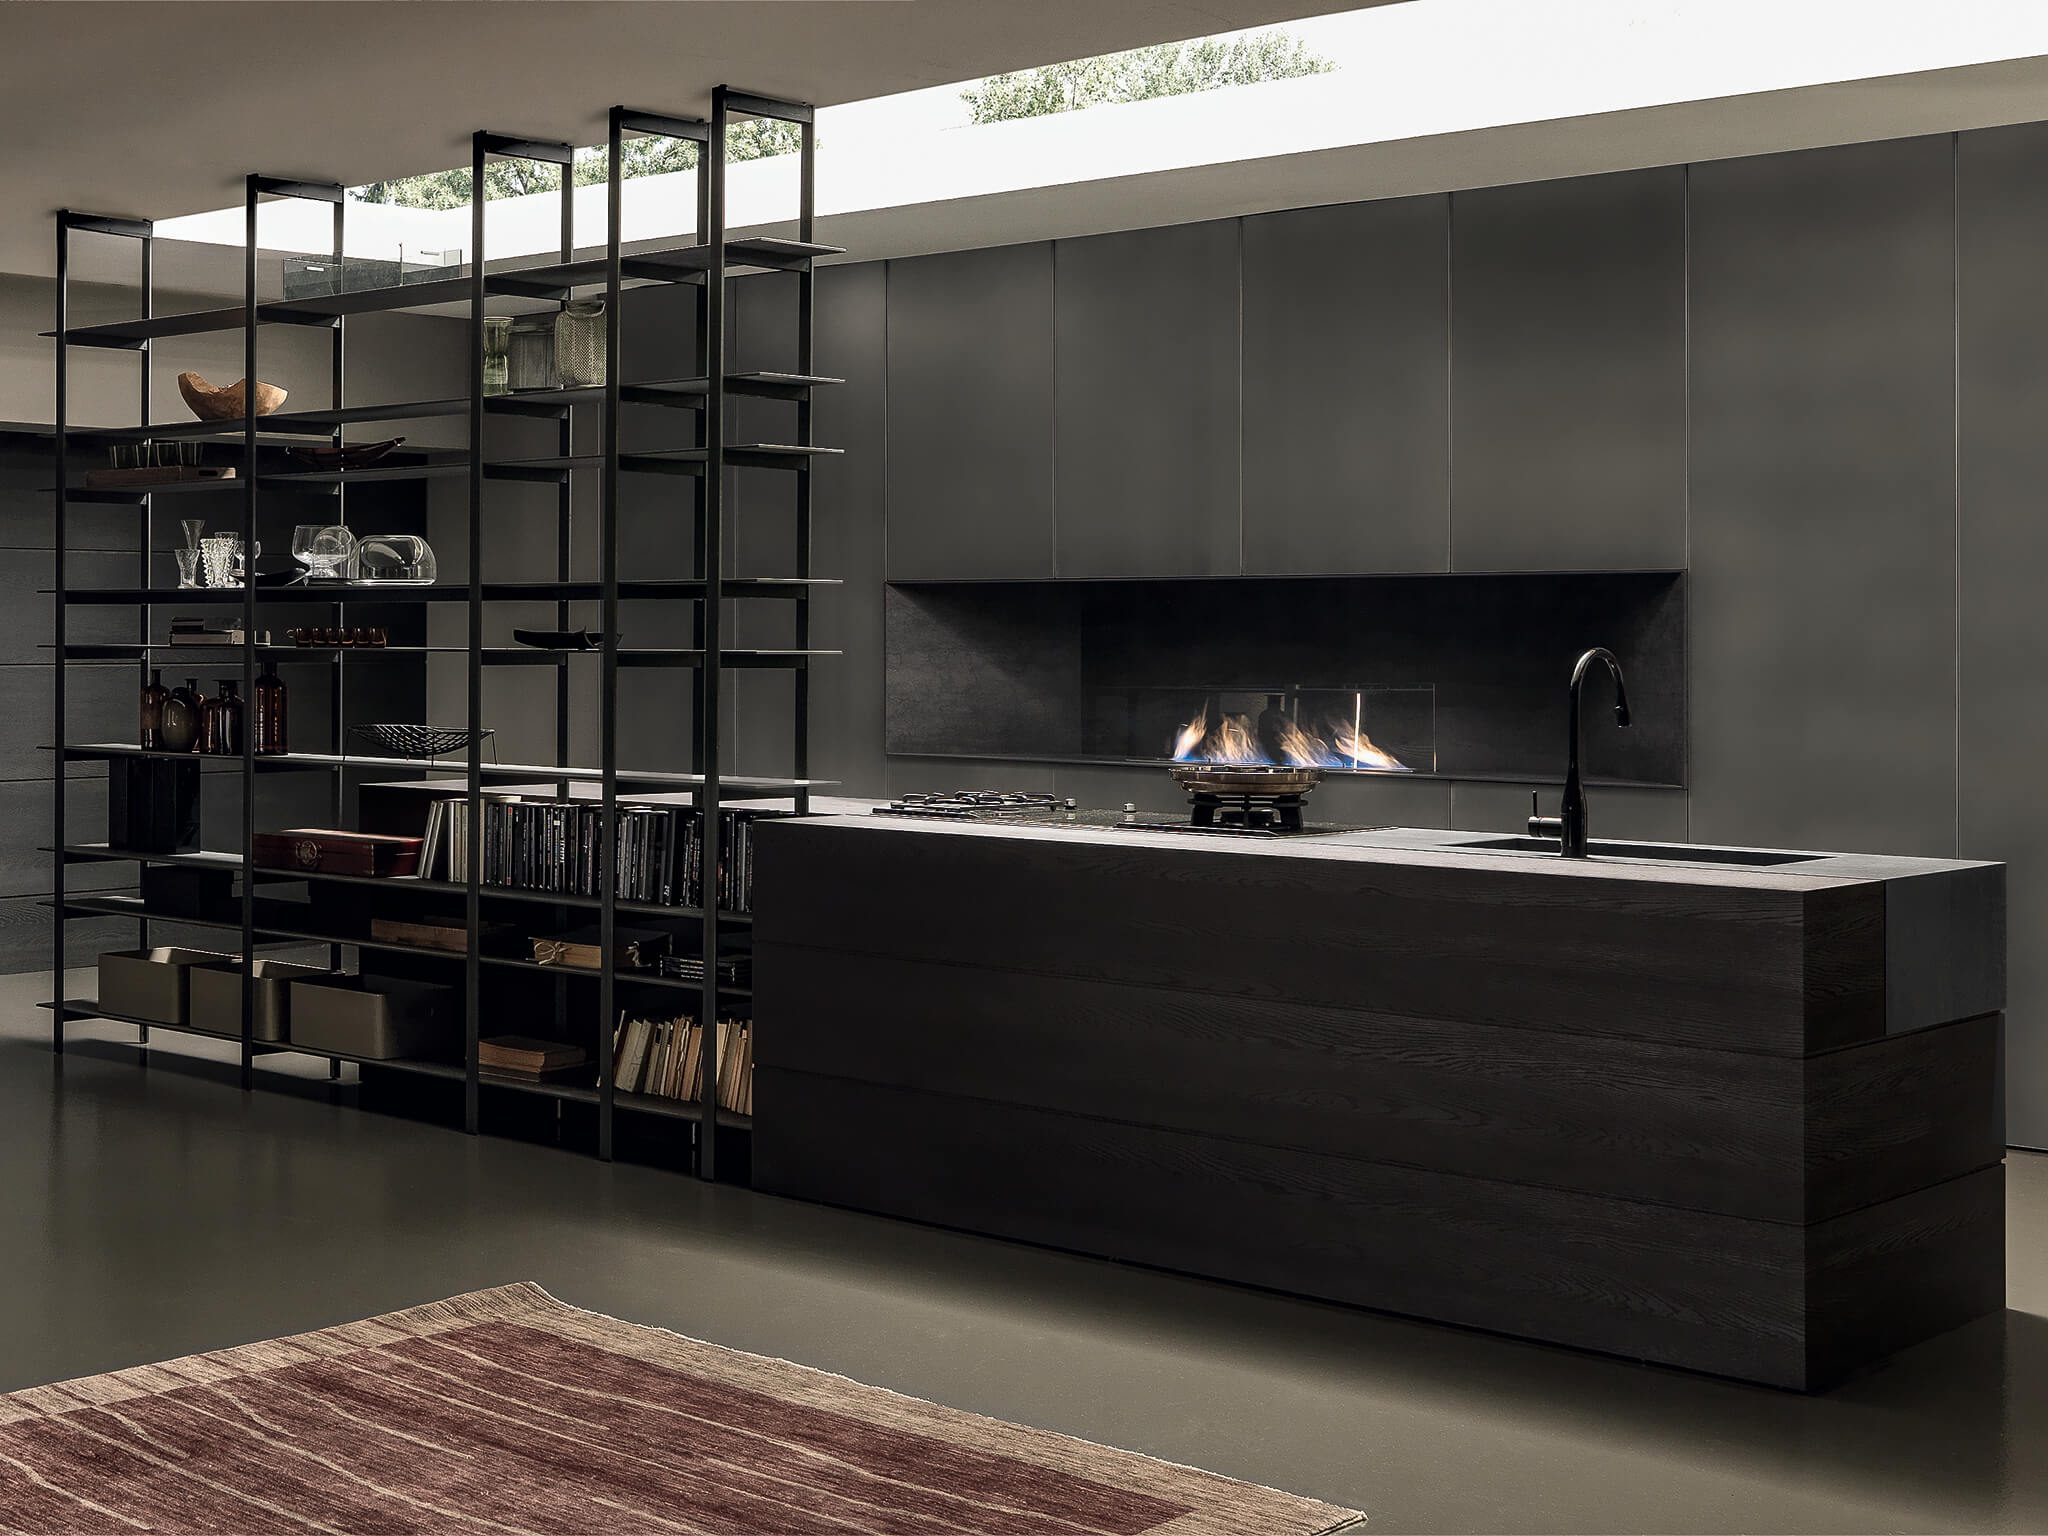 Blade ultra contemporary kitchen Archisesto Chicago